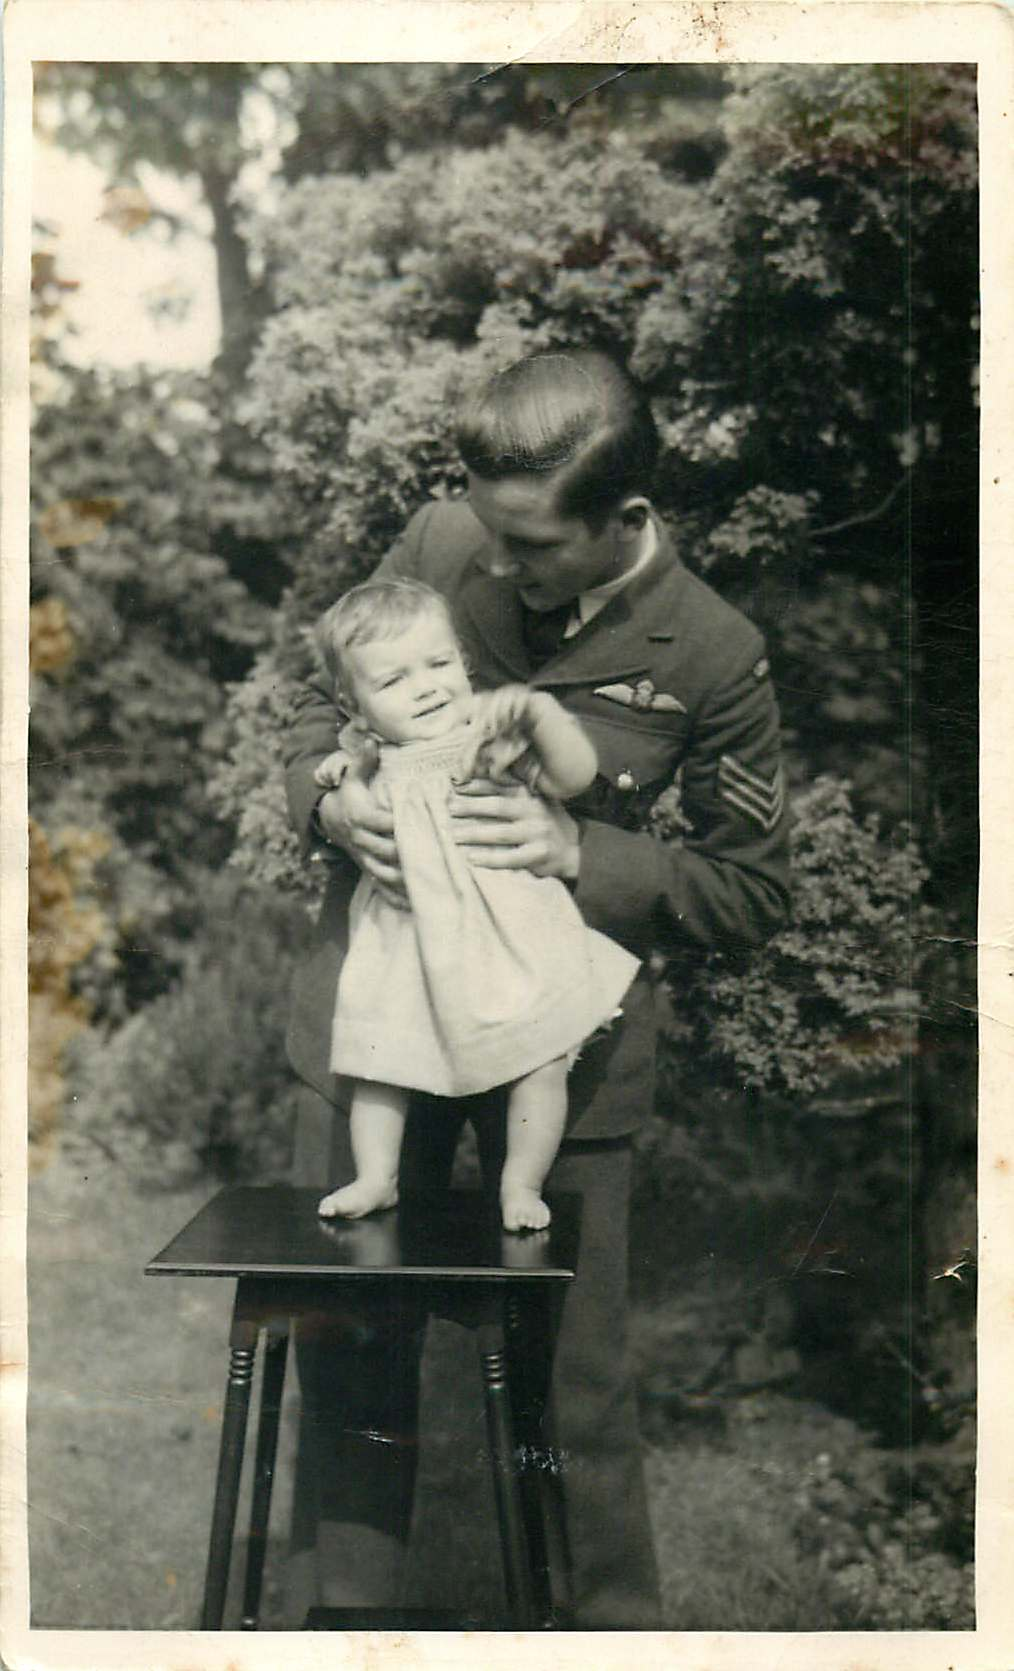 Group Photo– Robert M Buie my uncle holding me when I was 1 year old in 1942   Byron Alwyn Buie